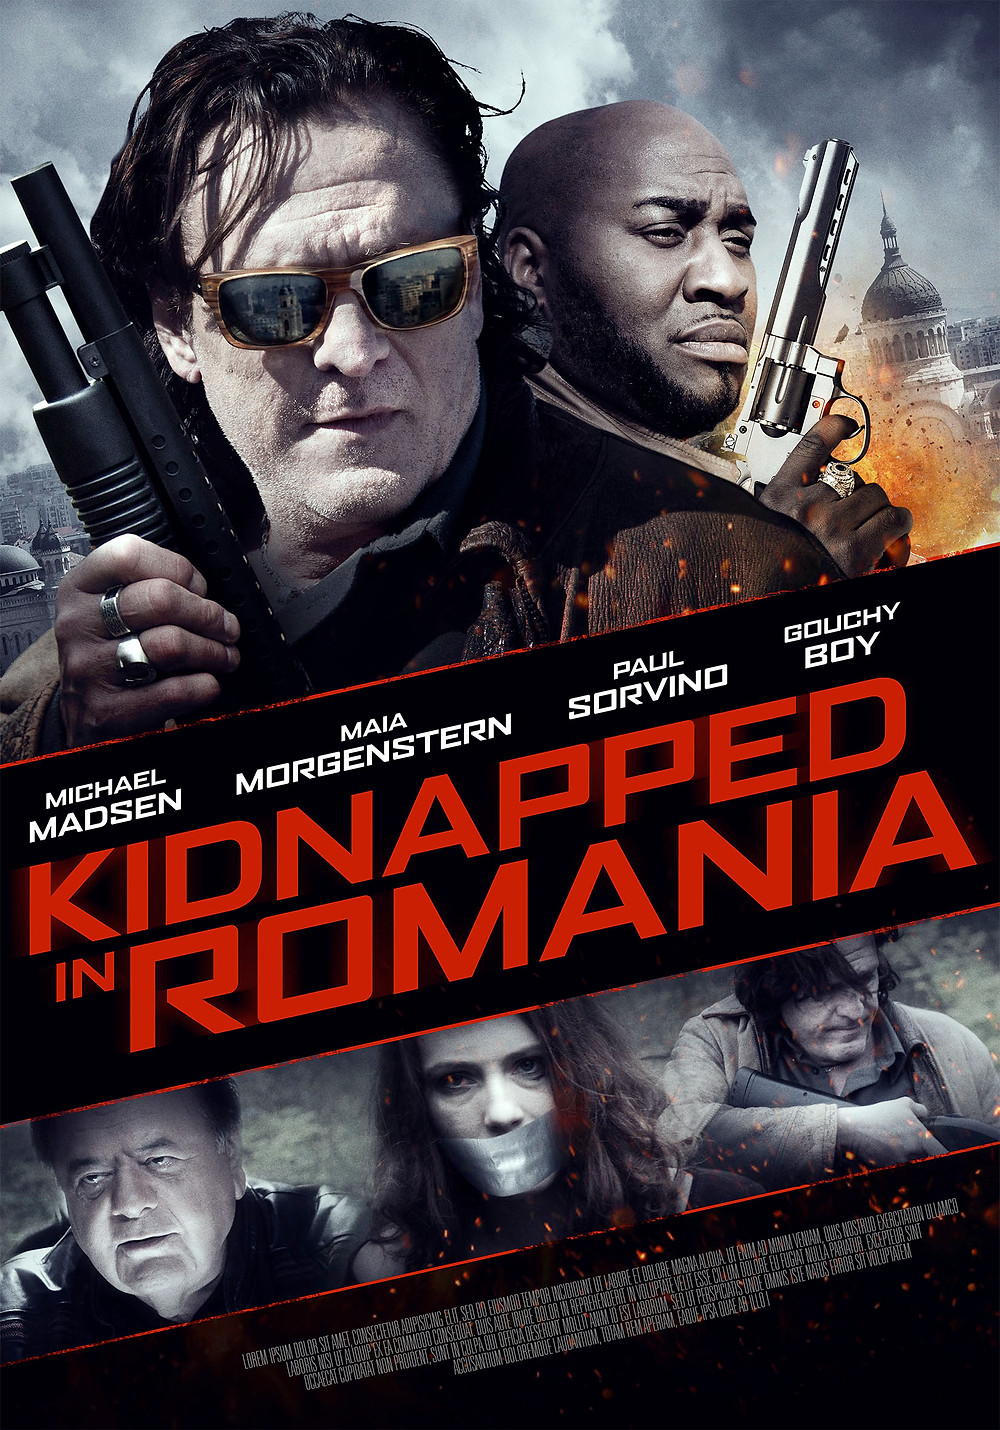 KIDNAPPED_IN_ROMANIA_ONE_SHEET_V0a.jpg